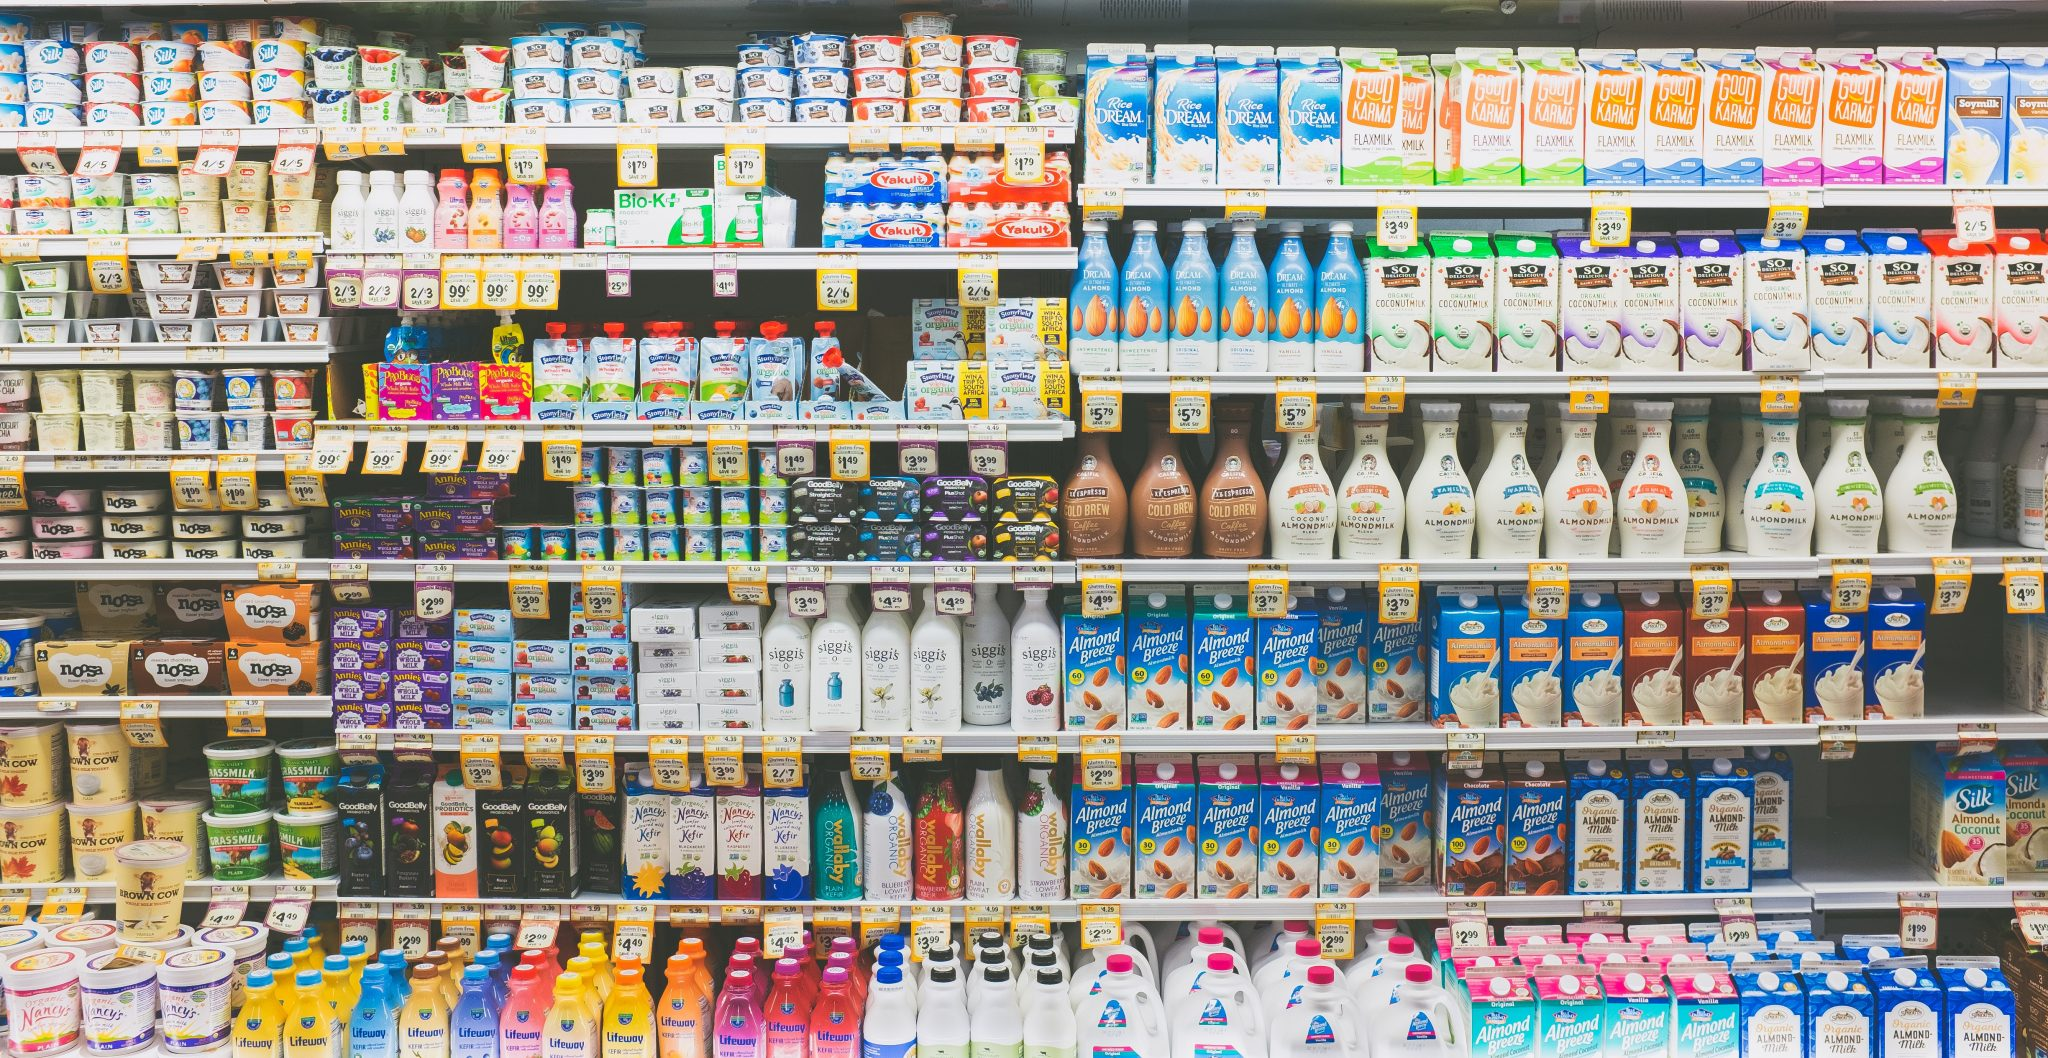 The milk and dairy shelves at the grocery store, full of dairy and nondairy alternatives